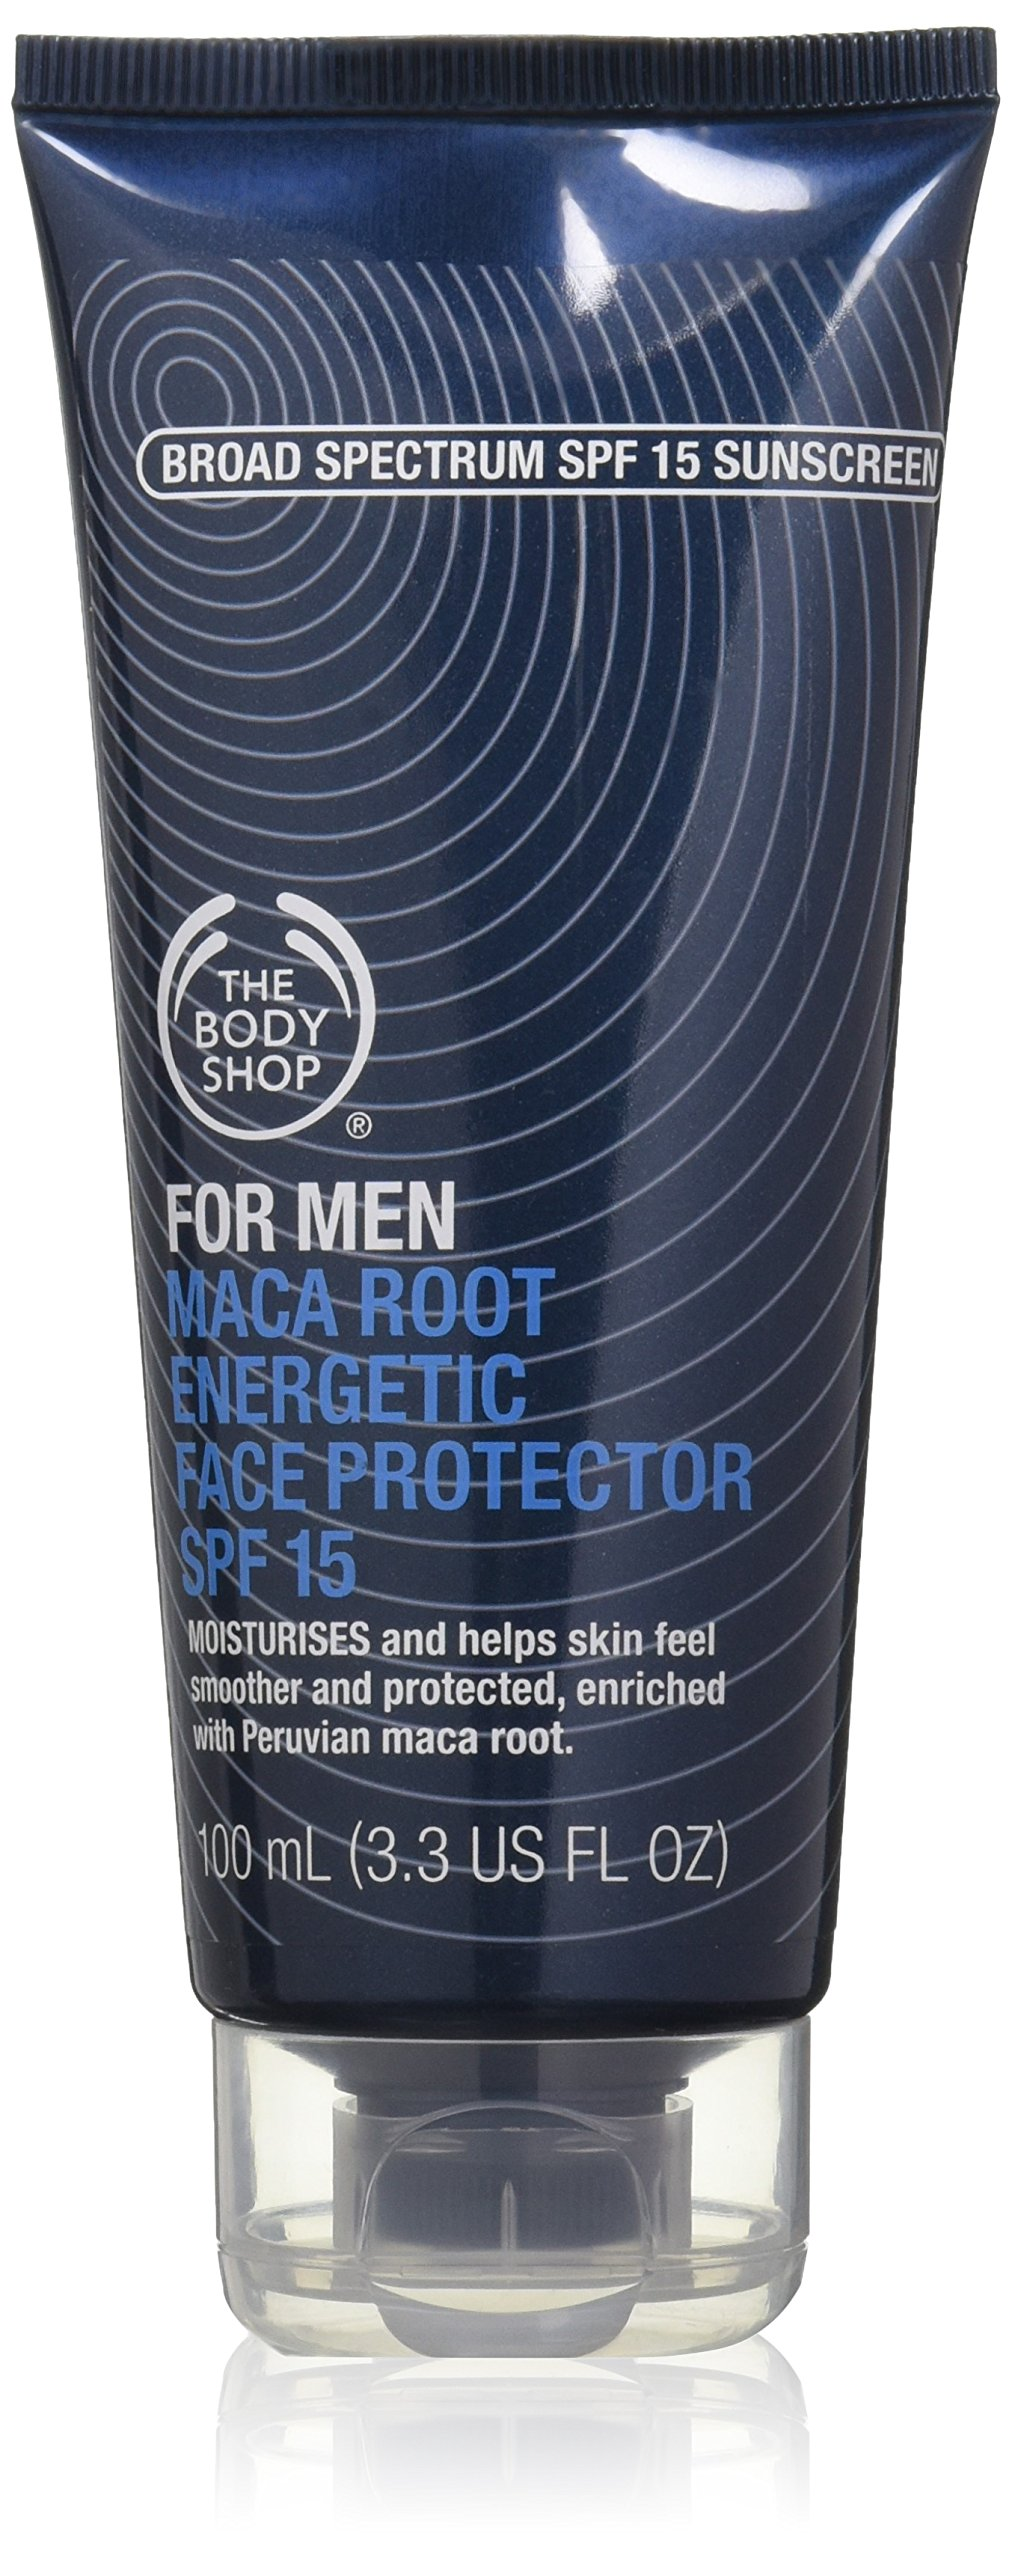 The Body Shop Energetic Face Protector for Men, Maca Root, 3.3 Fluid Ounce